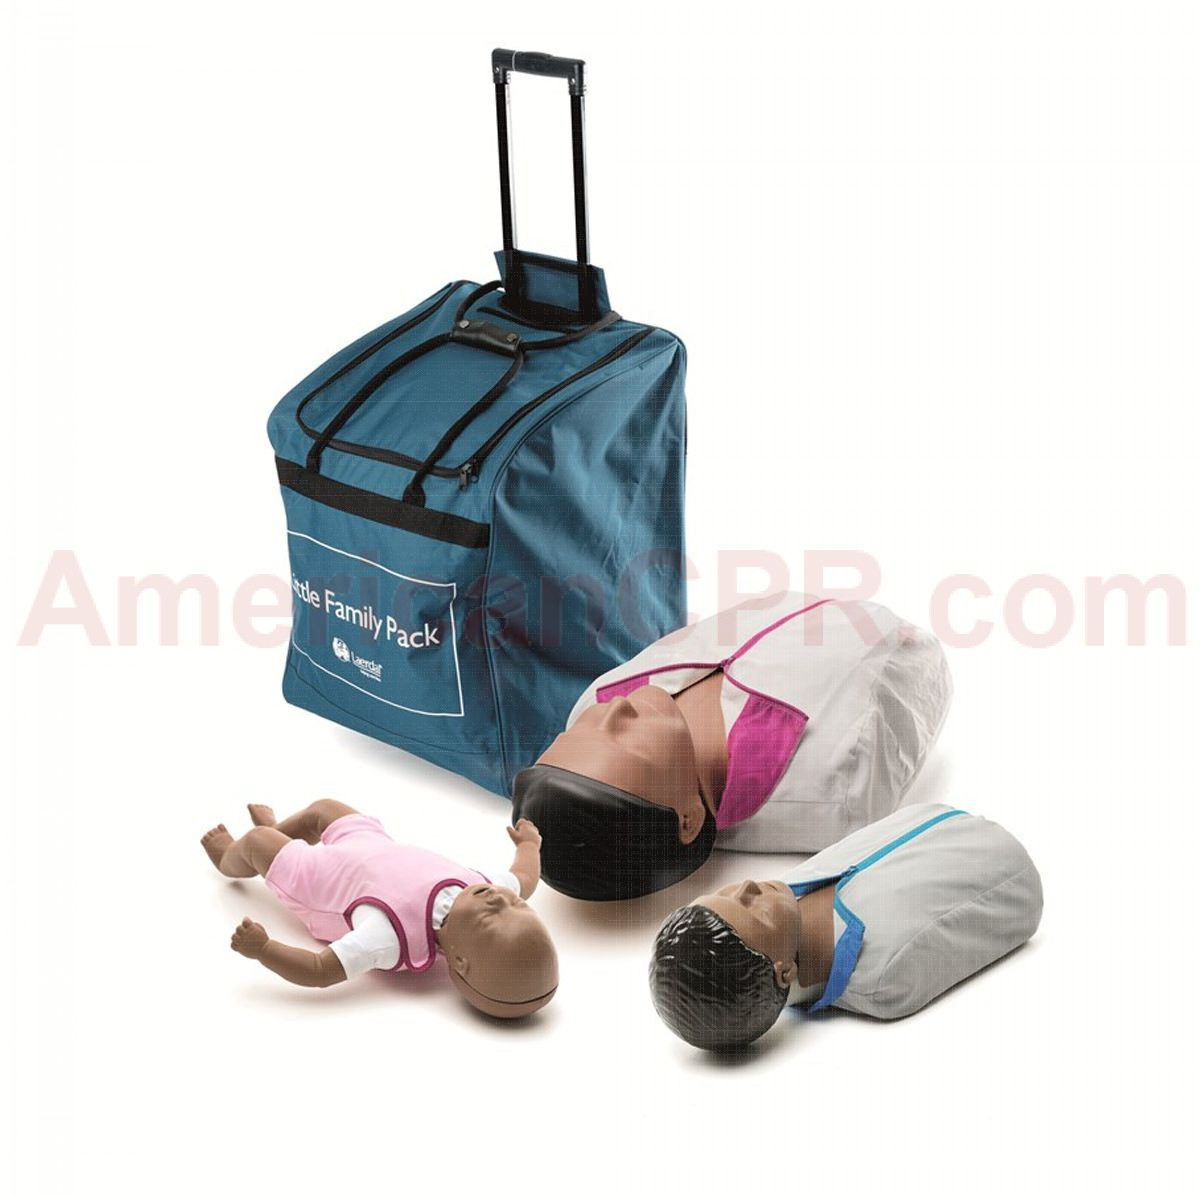 Little Family Pack - Dark Skin - Laerdal